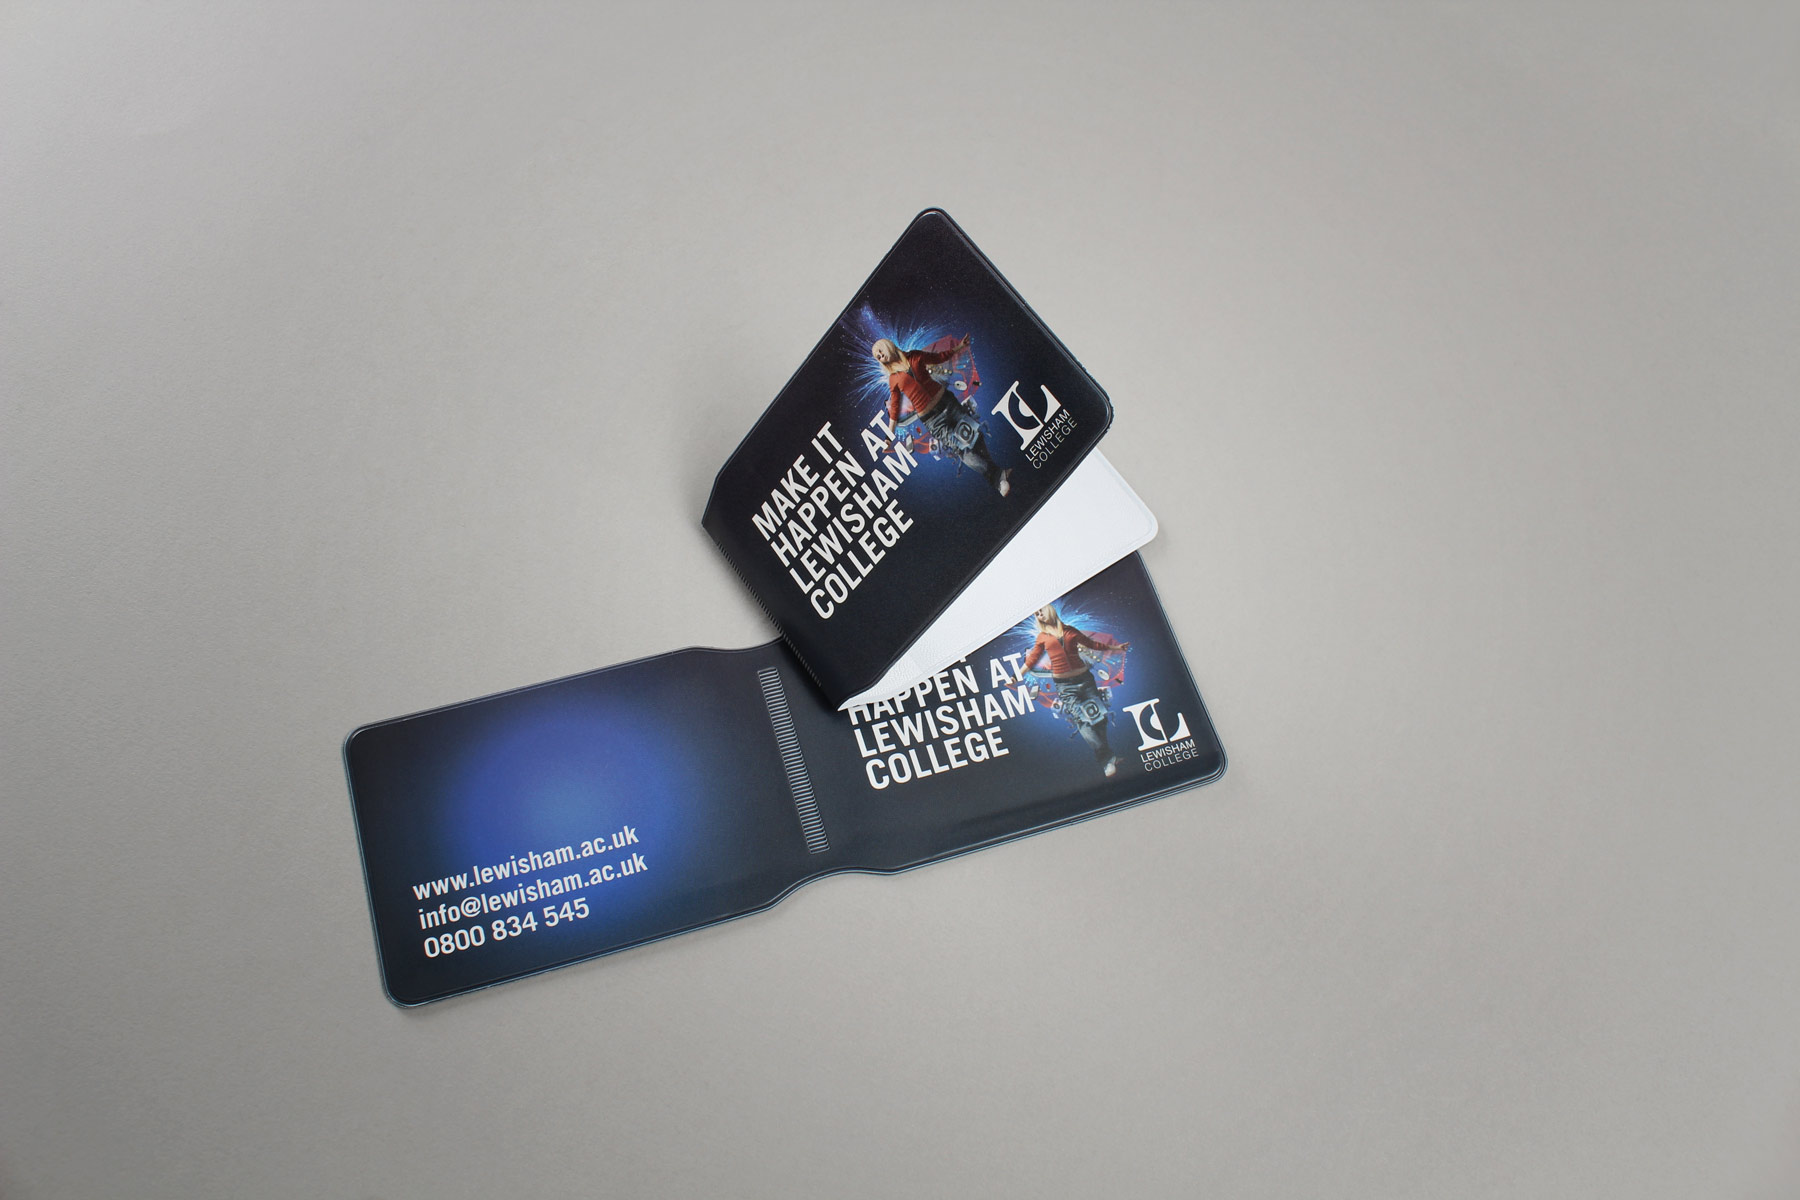 The campaign also extended to merchandising - Such as a handy travelcard wallet. Very useful in London!